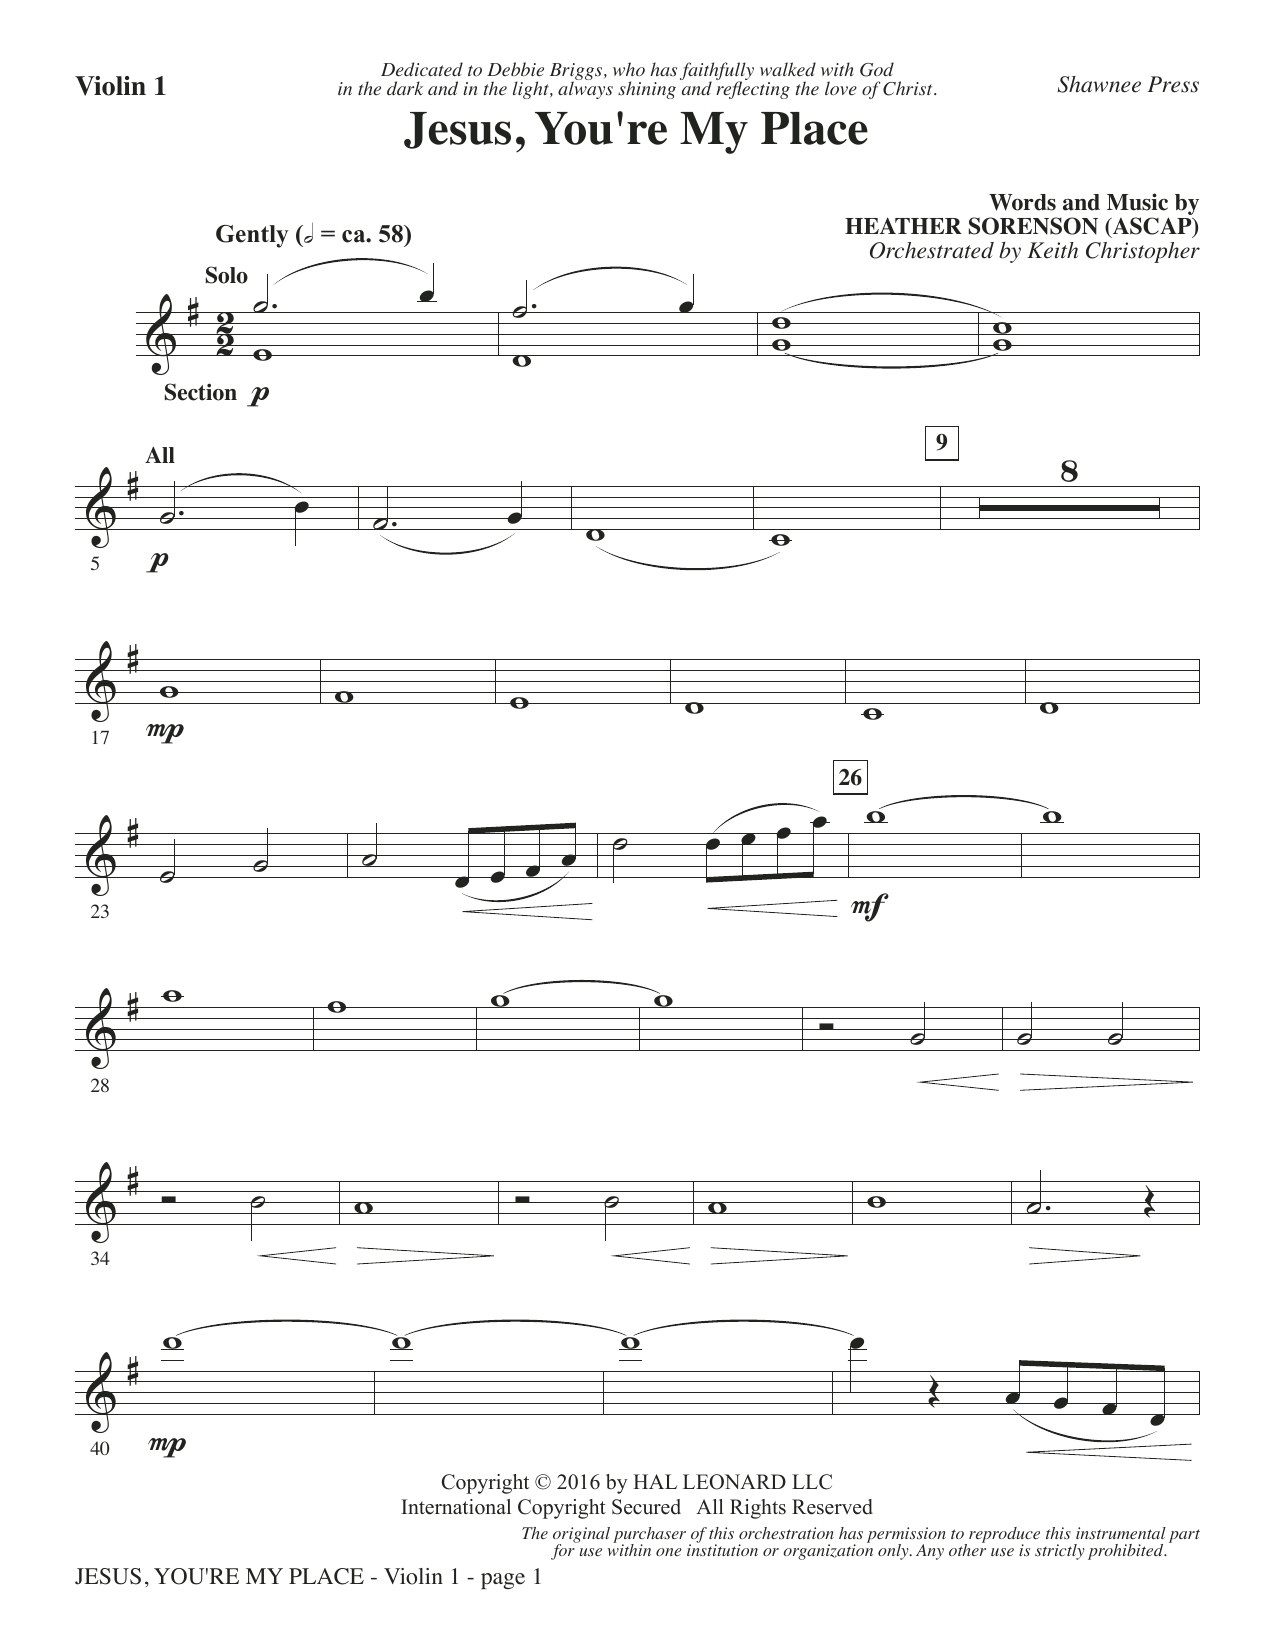 Jesus, You're My Place - Violin 1 Sheet Music